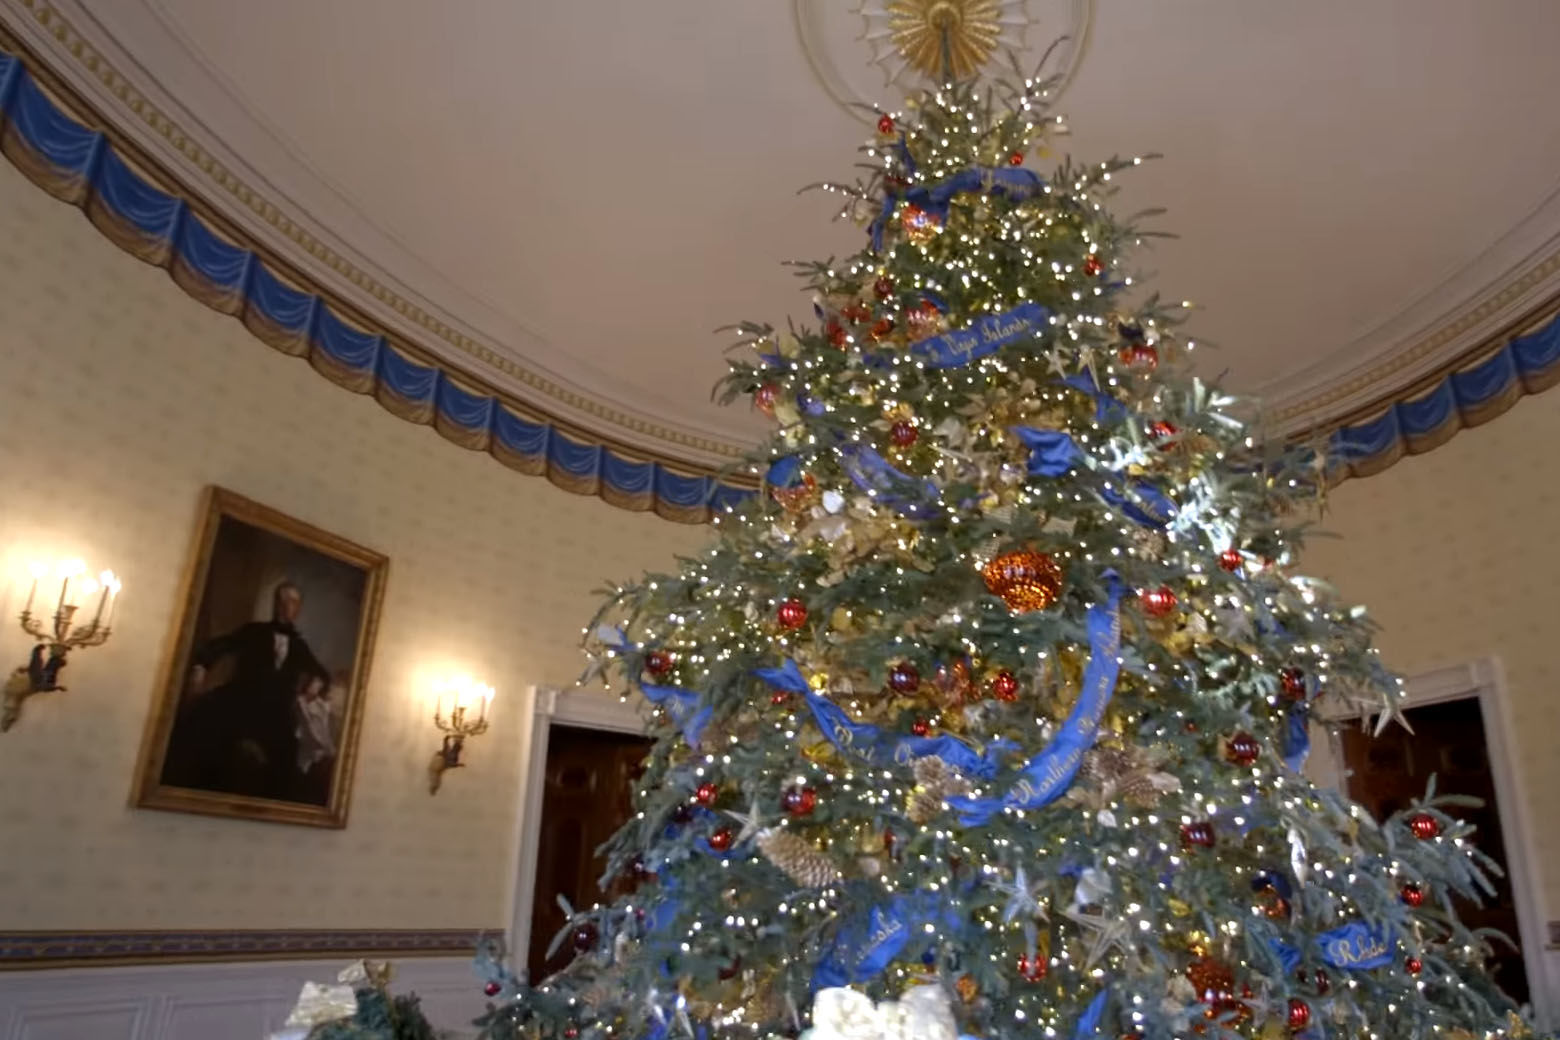 PHOTOS: First lady unveils White House 2018 Christmas ... on christmas lily plant, christmas pepper plant, snowman plant, christmas box plant, mistletoe plant, christmas pine plant, christmas rose plant, christmas chinese lantern plant, christmas candle plant, cinderella rose plant, christmas kalanchoe plant, name of christmas plant, christmas bulb plant, goldfish plant, polar arctic tundra plant, christmas hope plant, christmas berry plant, christmas tree, christmas heliconia plant, christmas hydrangea plant,